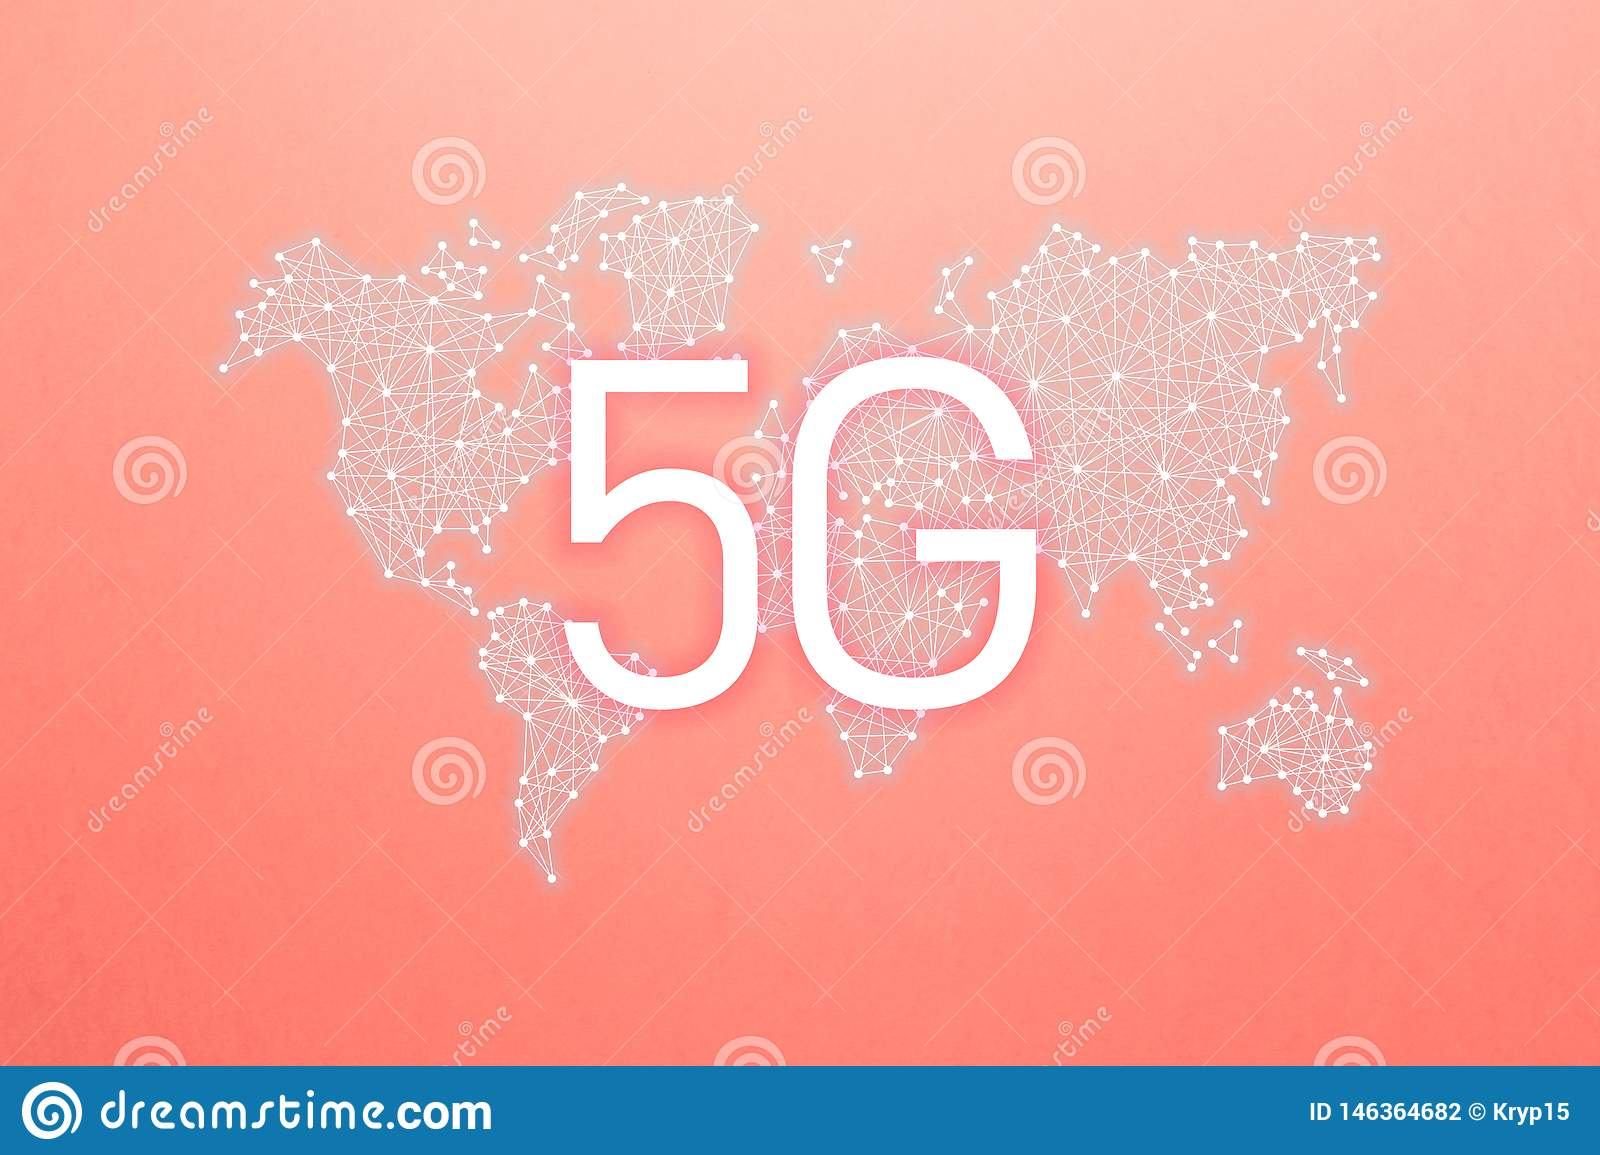 World community and network. 5G network Internet mobile wireless business concept